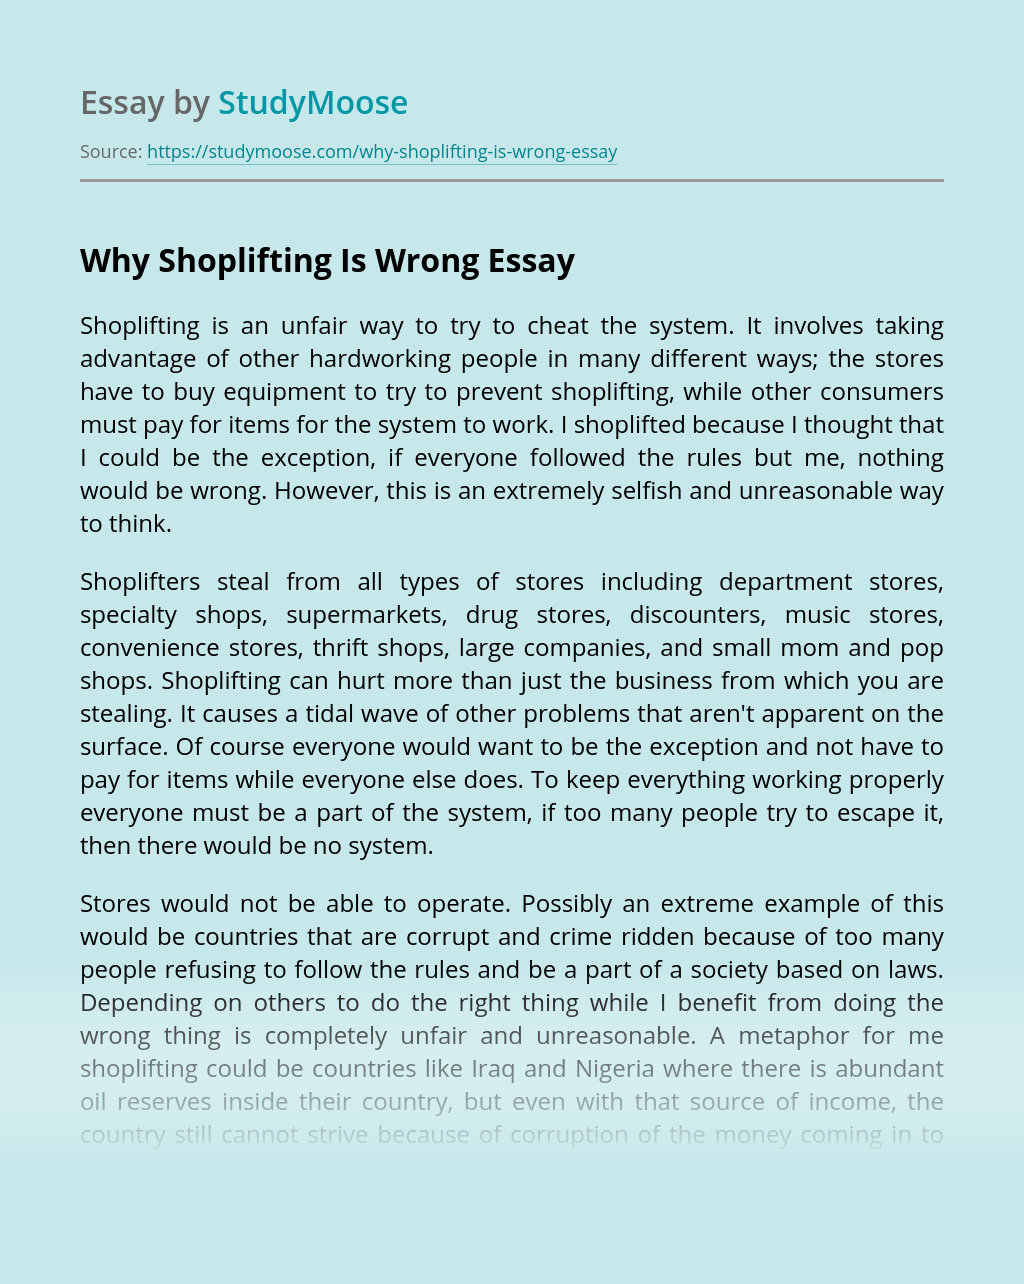 Why stealing is wrong essay